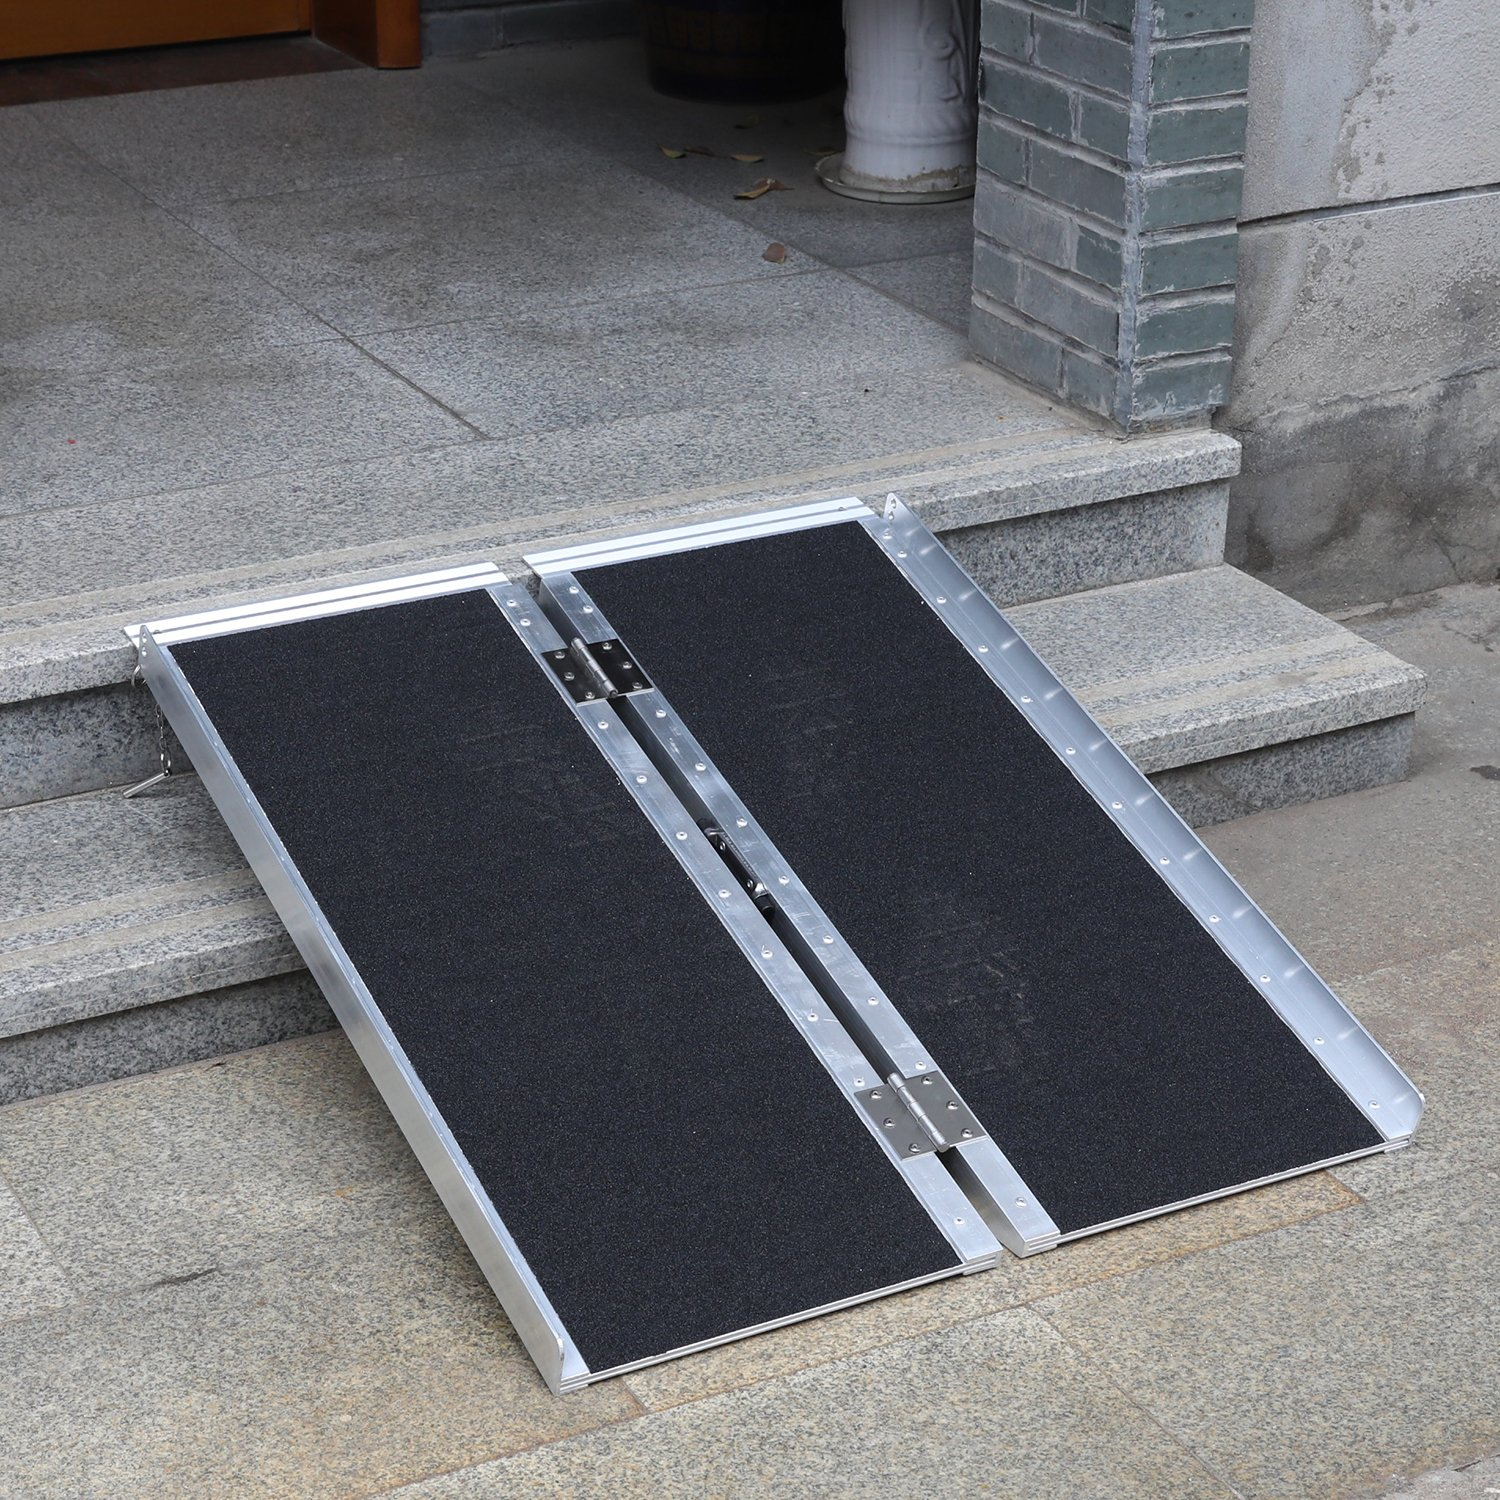 Portable Aluminum Wheelchair Ramp Foldable Separated Mobility Scooter Traction Ramp with Carrying Handle 3 Feet by Hromee (Image #6)